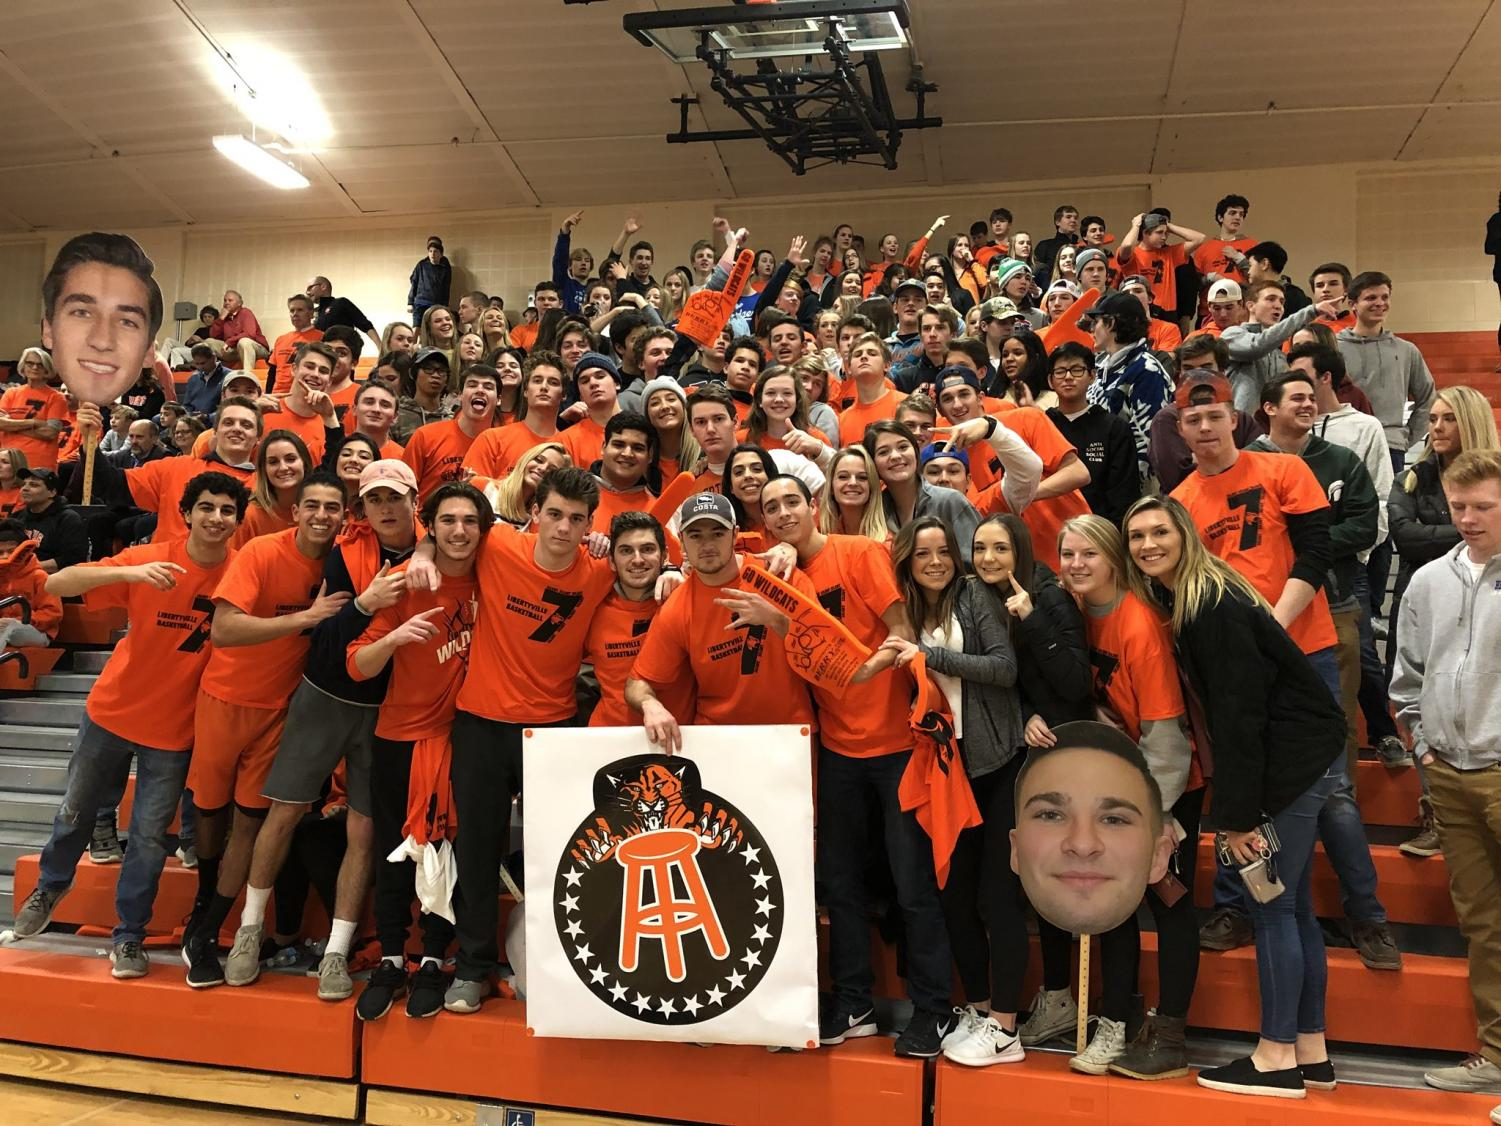 """Whenever an LHS sports event, such as a basketball game, has a large fan turnout, there is often positive feedback for the players. """"The fans energize us, and it's great to have a ton of people come to our games,"""" mentioned boys basketball senior captain and starting forward Chase Eyre."""